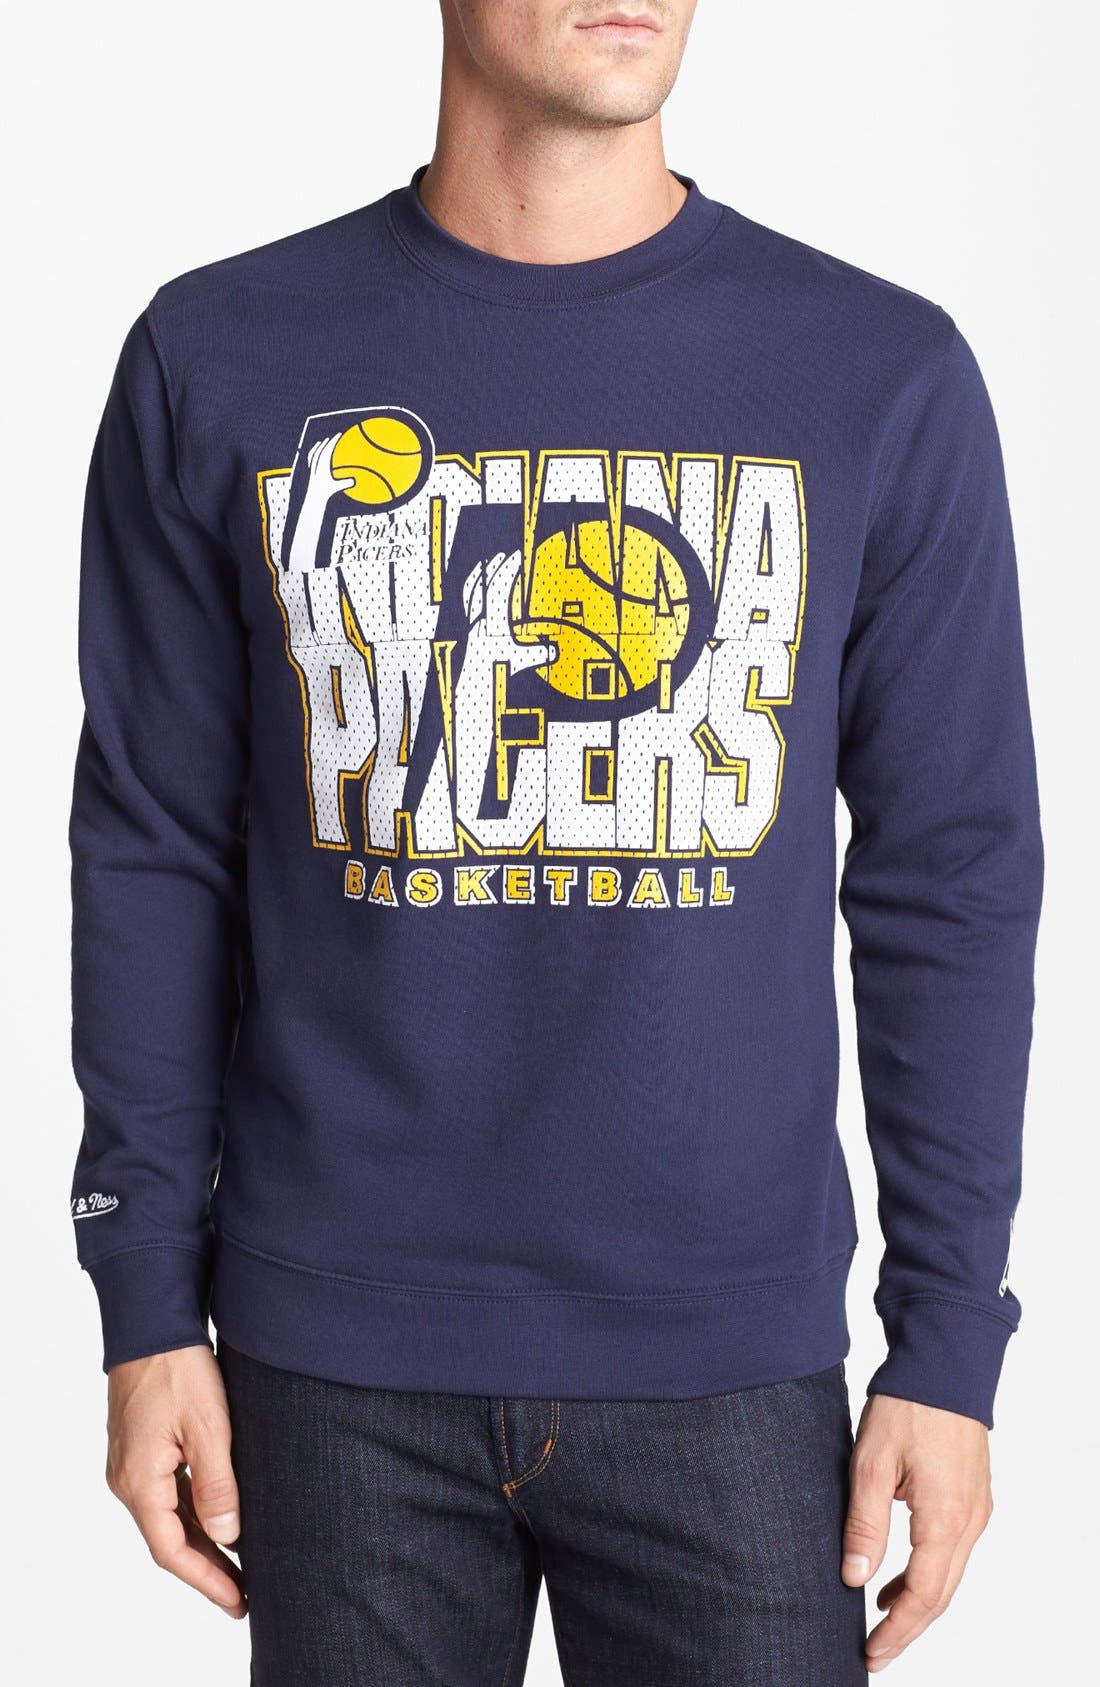 Alternate Image 1 Selected - Mitchell & Ness 'Indiana Pacers - Technical Foul' Sweatshirt